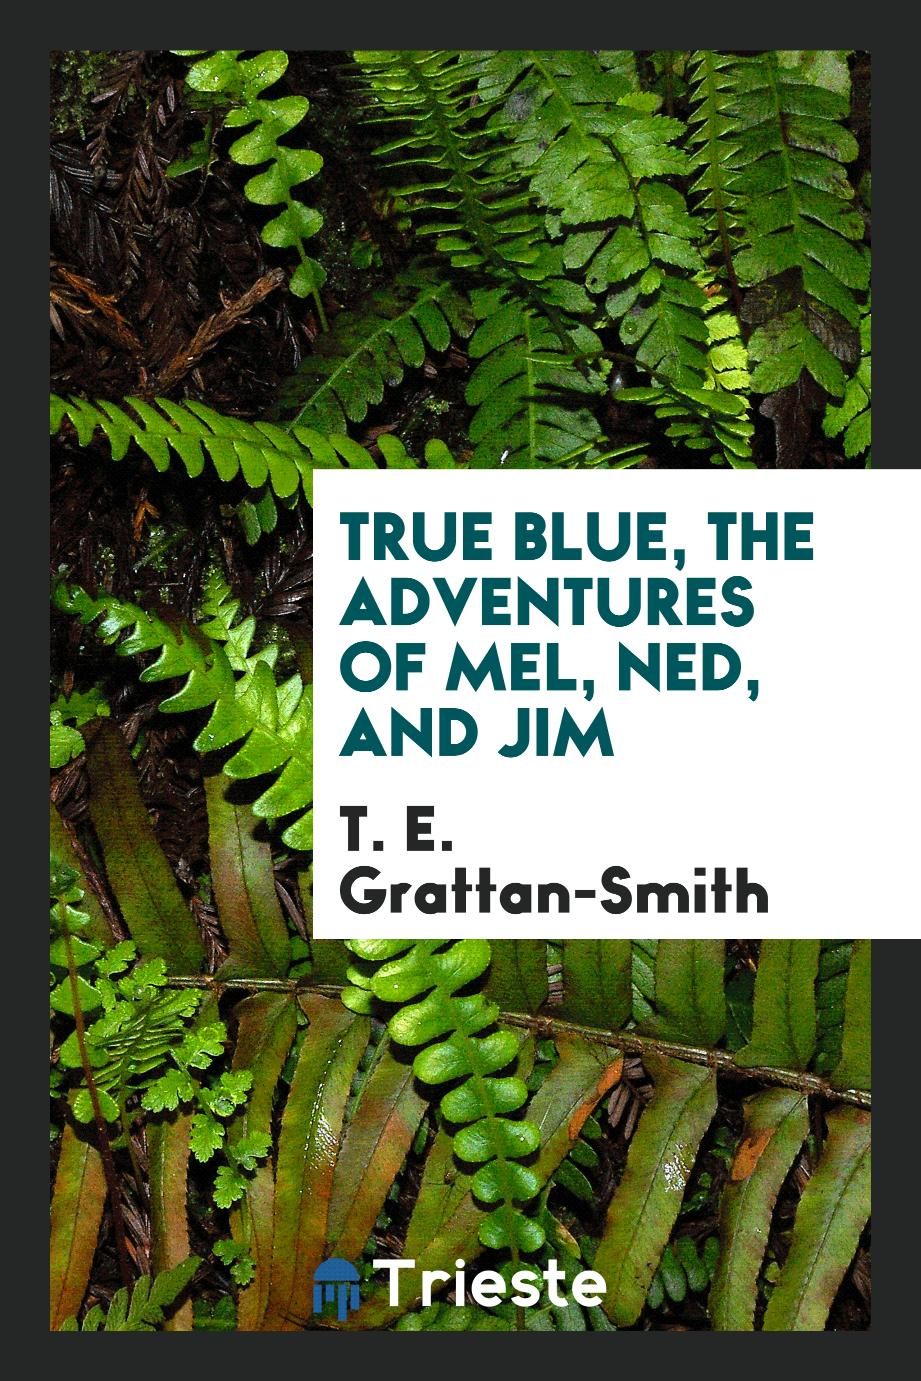 True blue, the adventures of Mel, Ned, and Jim